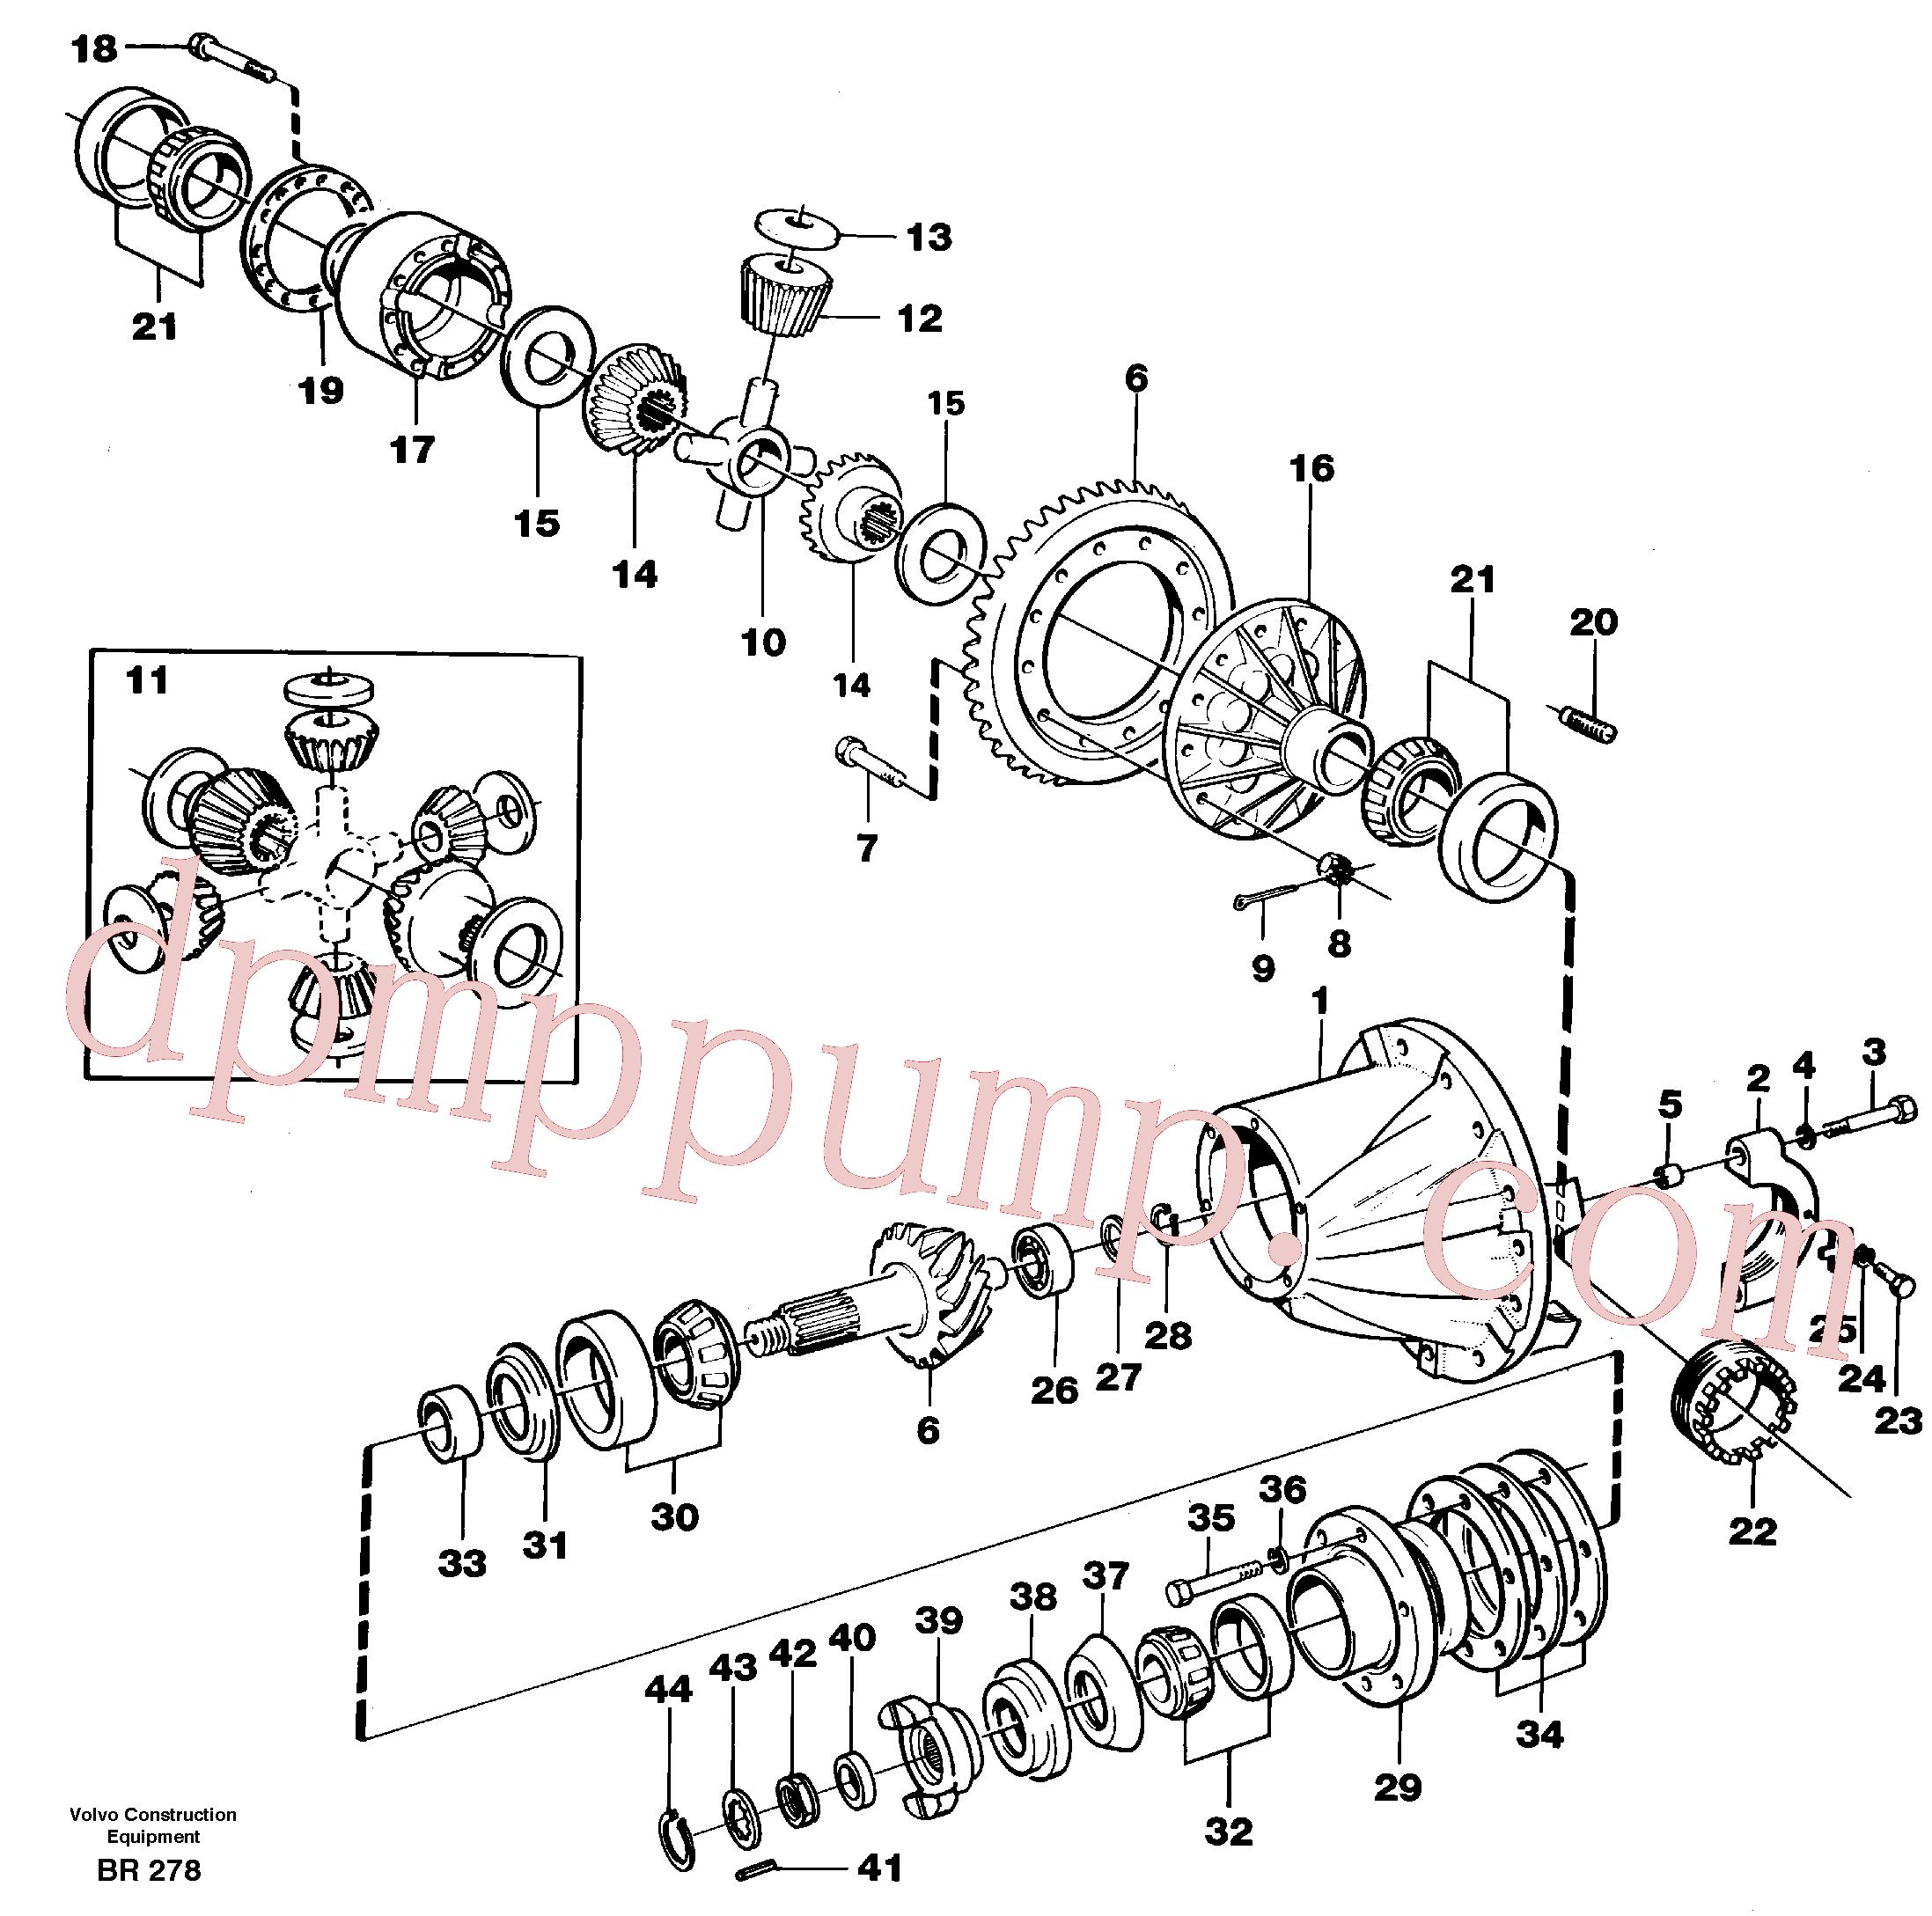 VOE11035607 for Volvo Final drive(BR278 assembly)